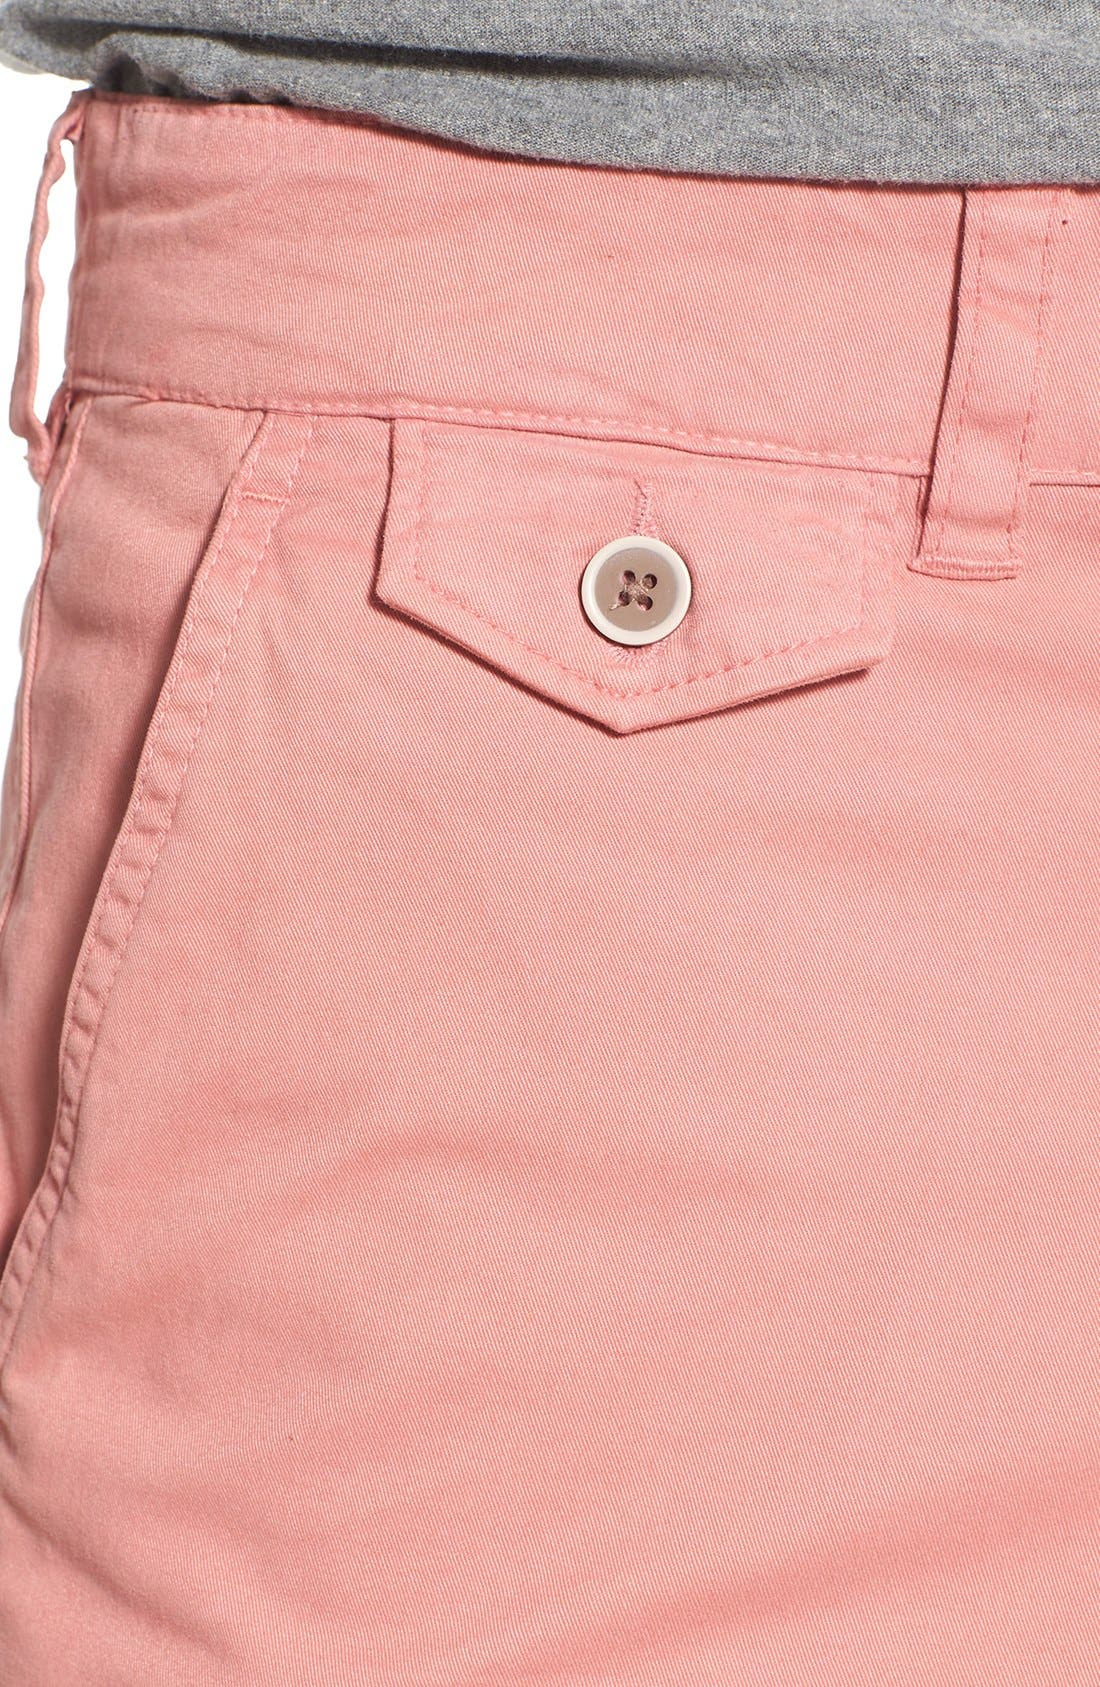 'Sunny' Stretch Chino Shorts,                             Alternate thumbnail 30, color,